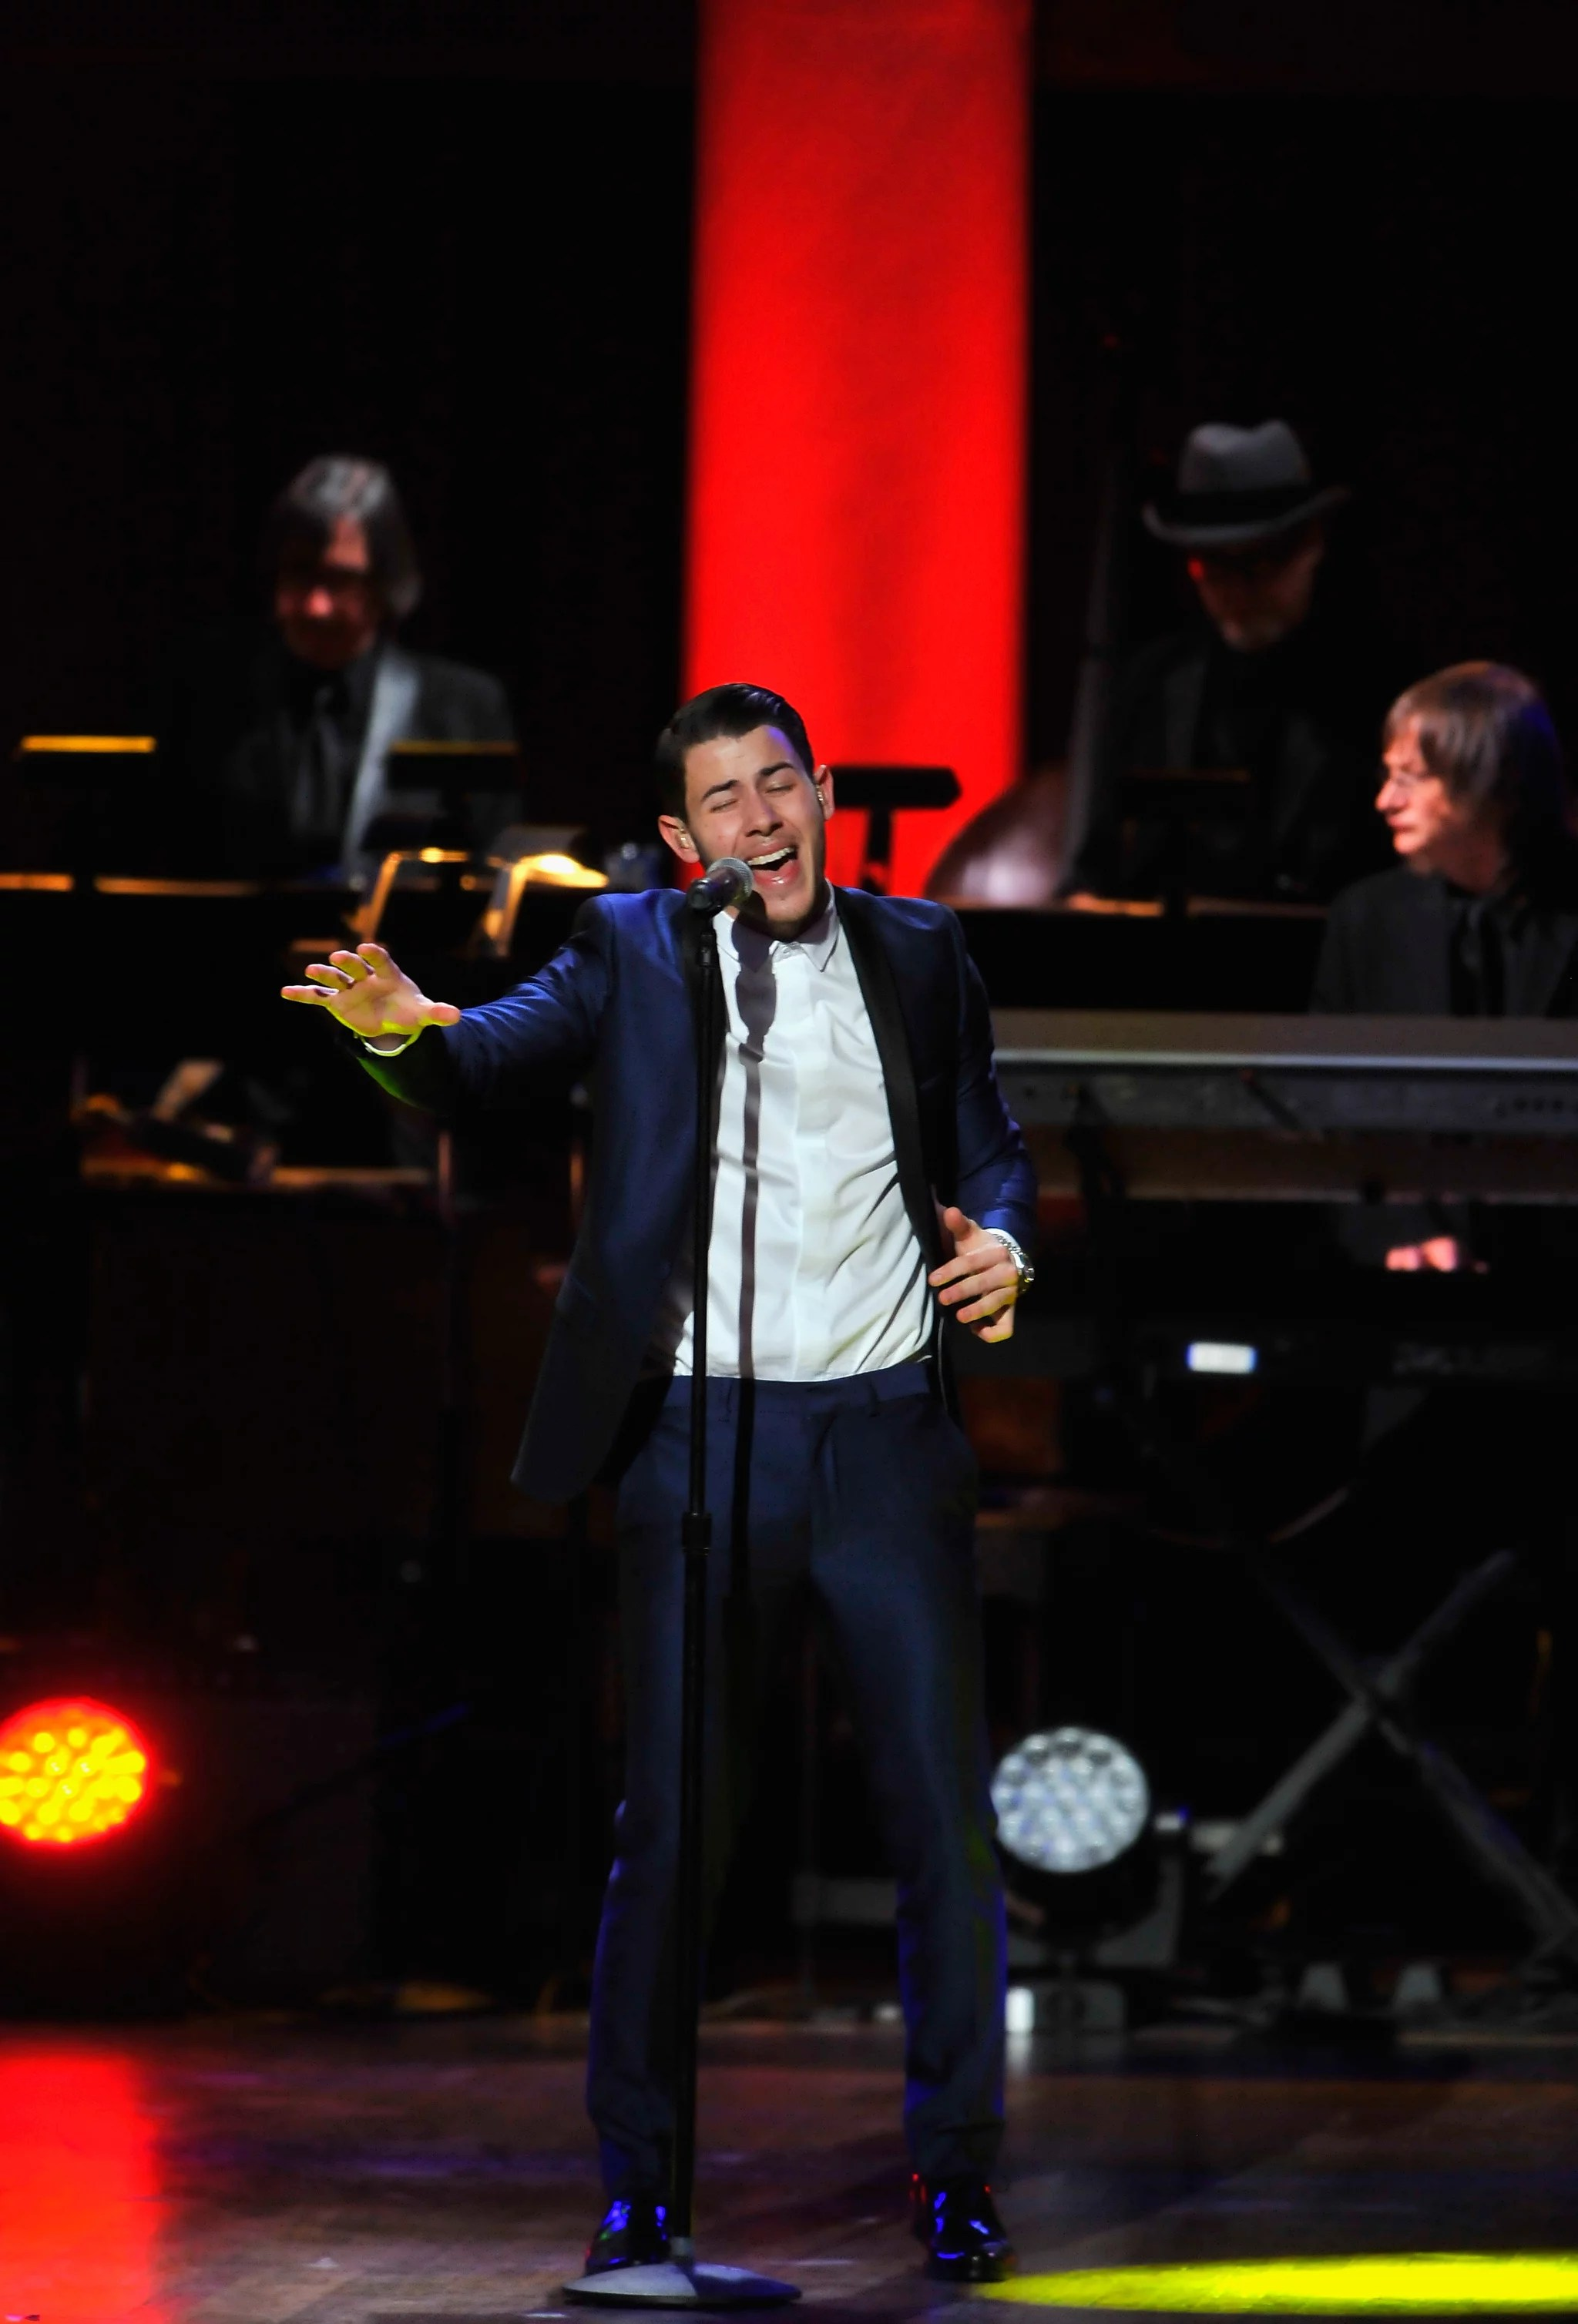 Nick Family Singing Show : family, singing, Jonas, Suited, Lincoln, Awards:, Concert, Can't-Miss, Celebrity, Pics!, POPSUGAR, Photo